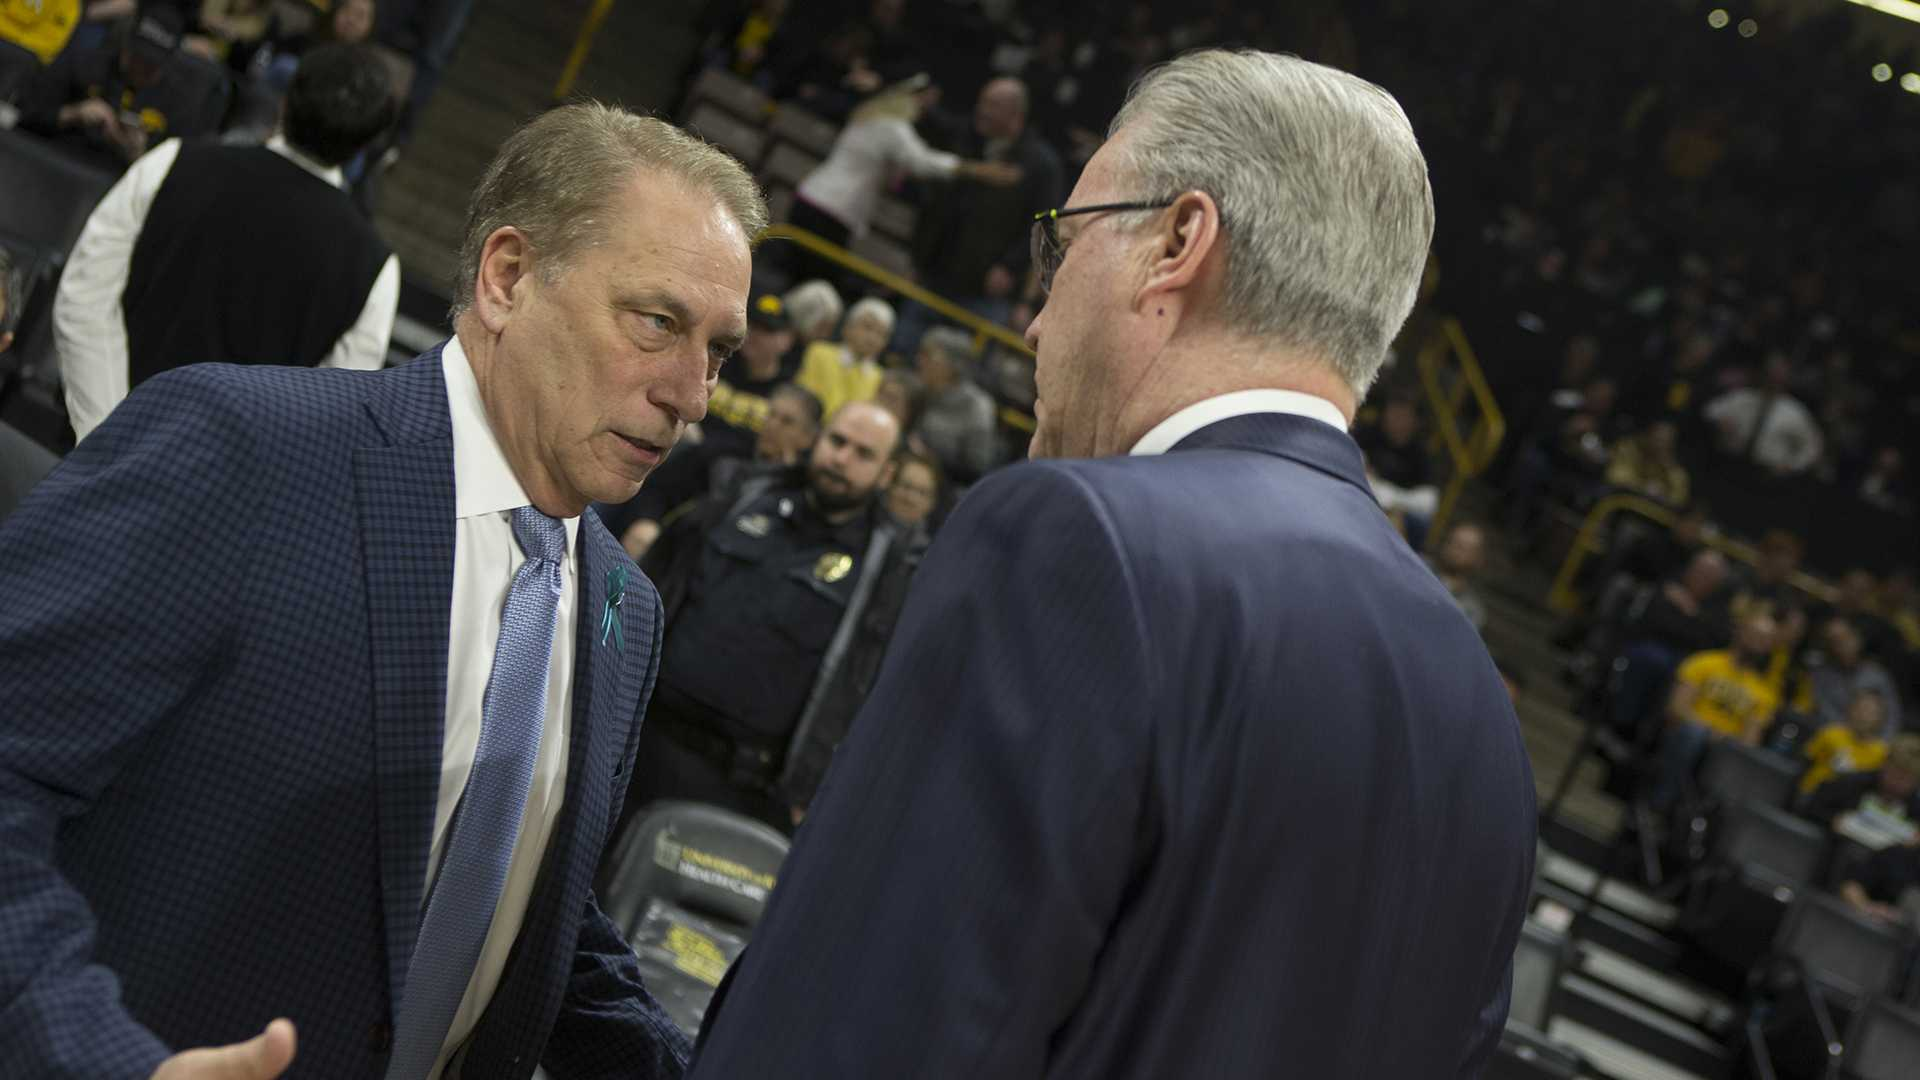 Iowa head coach Fran McCaffery (right) and Michigan State head coach Tom Izzo meet before a basketball game between Iowa and Michigan State at Carver-Hawkeye Arena on Tuesday, Feb. 6, 2018. The Hawkeyes were defeated by the visiting Spartans, 96-93. (Shivansh Ahuja/The Daily Iowan)